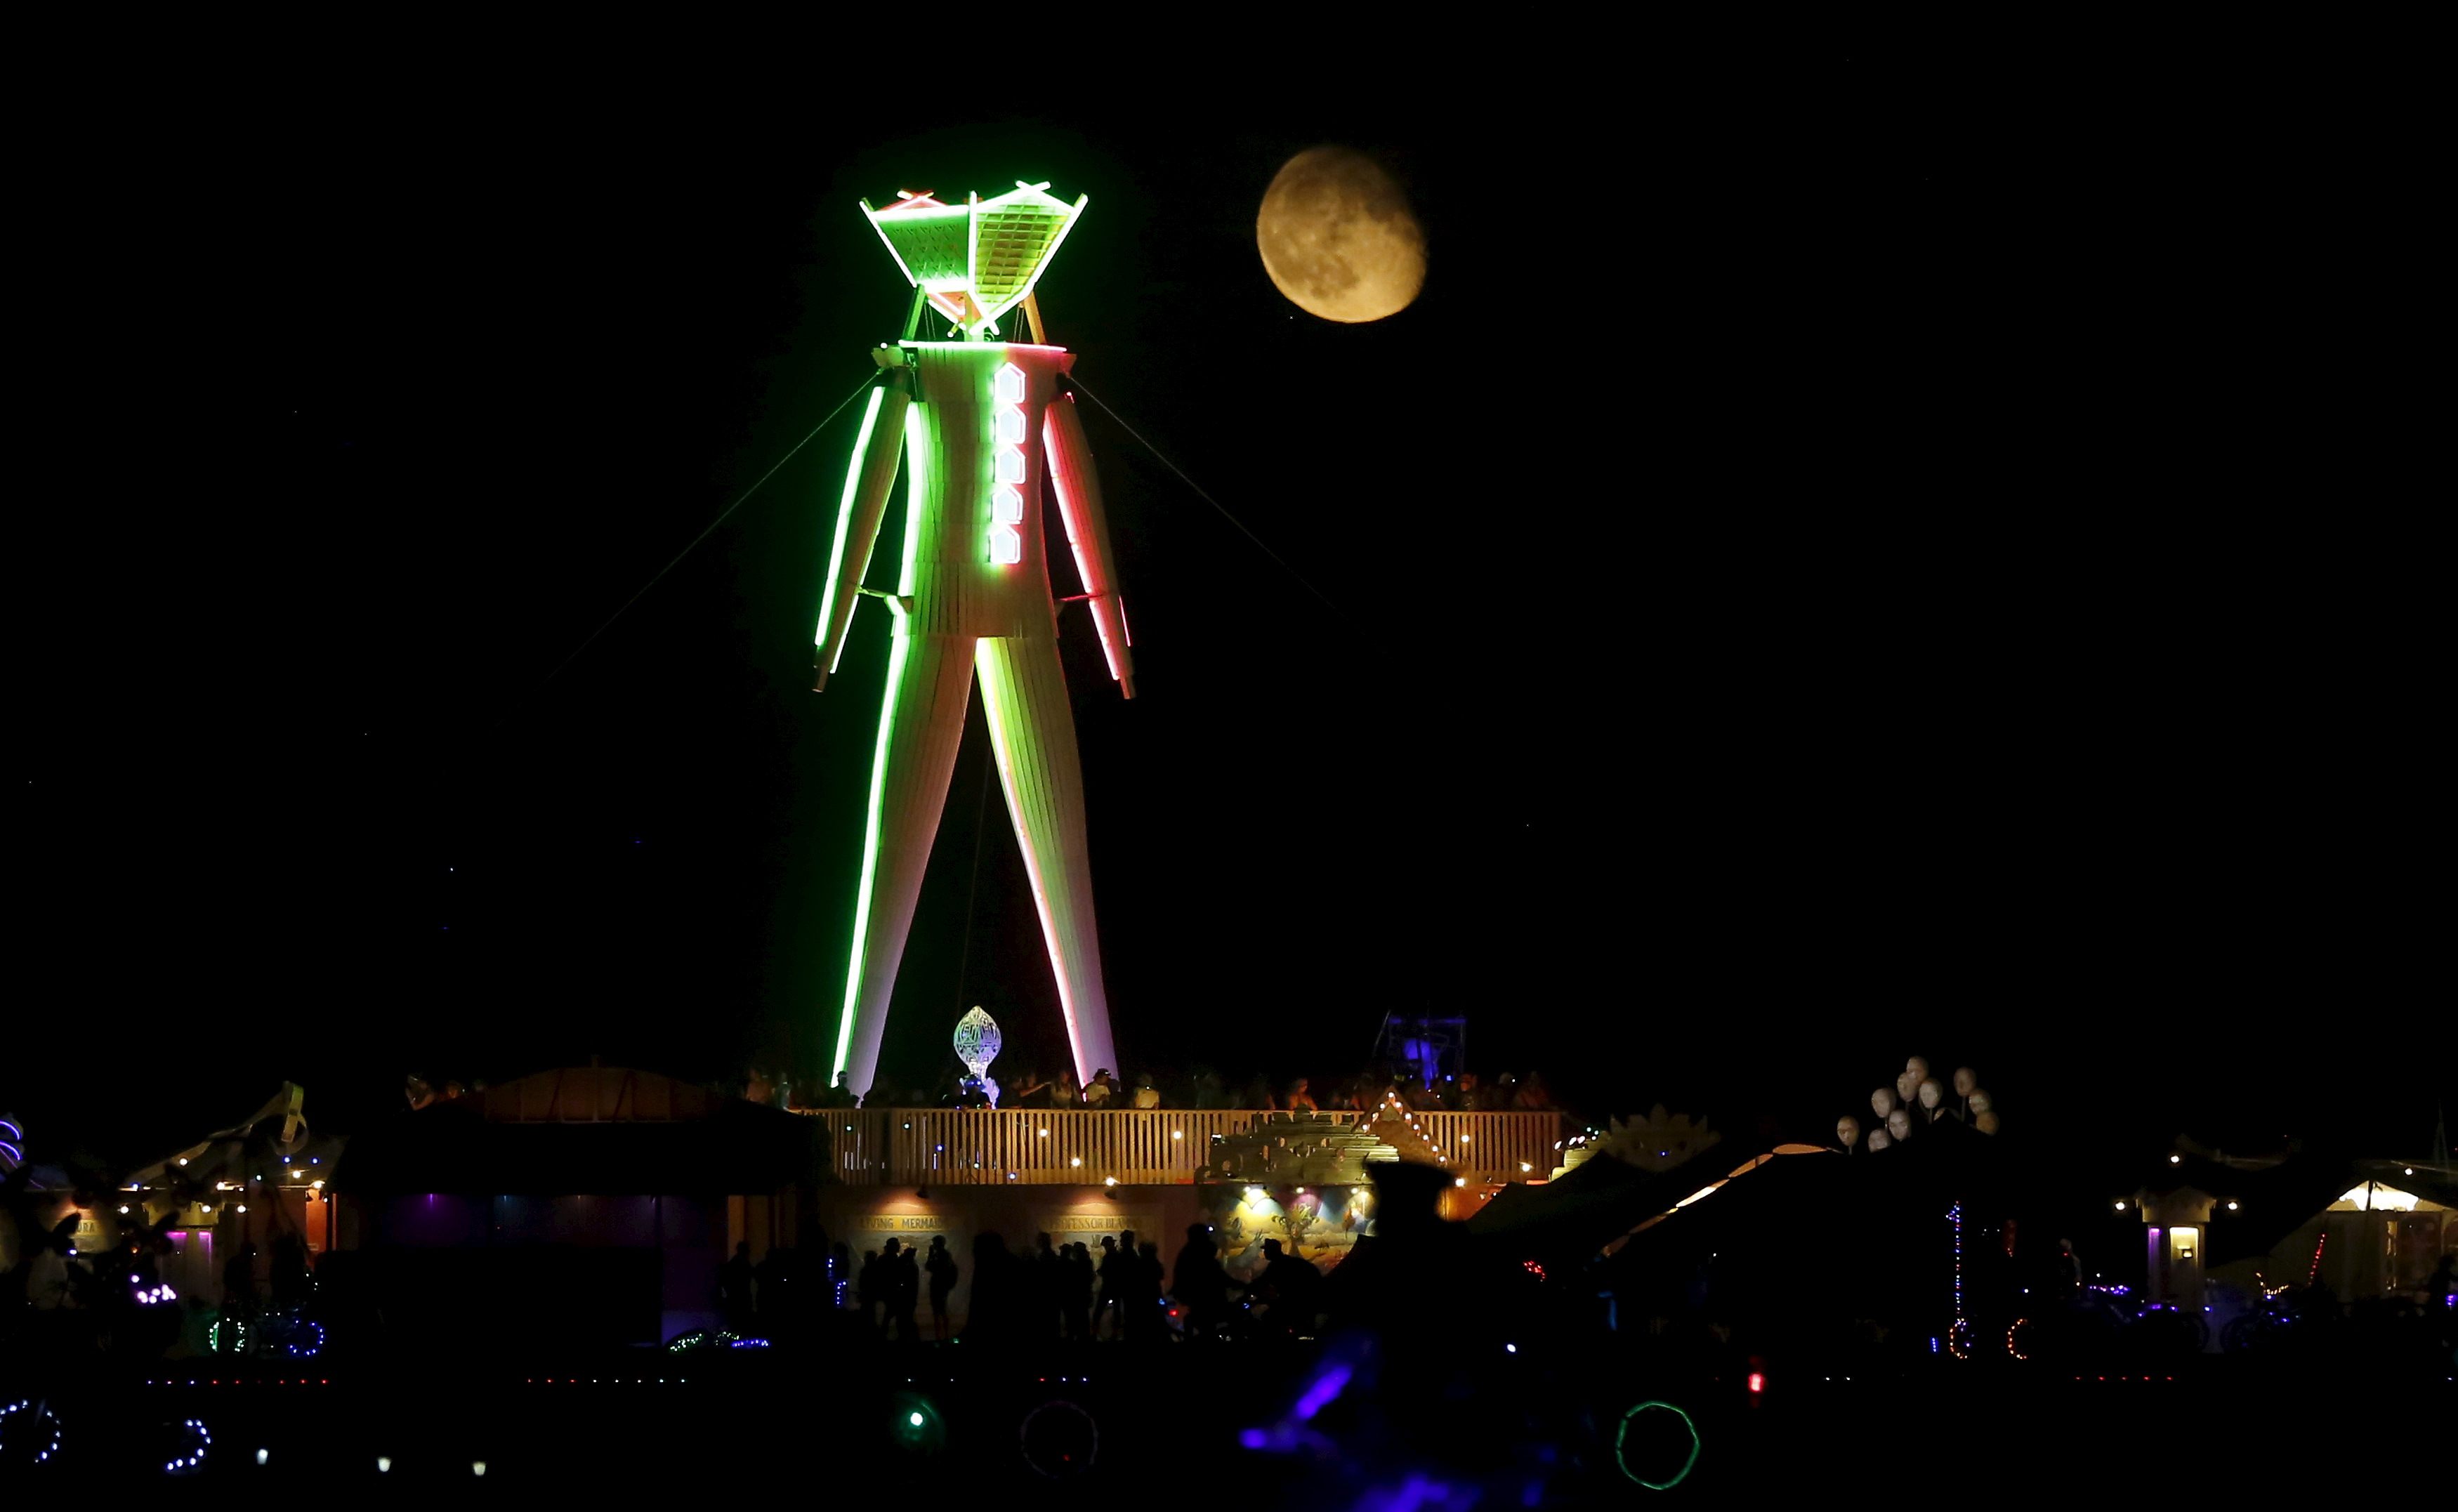 The moon rises behind the effigy that will be lit ablaze at the culmination of the Burning Man festival, which celebrates music, art and community. Photo by Jim Urquhart/Reuters